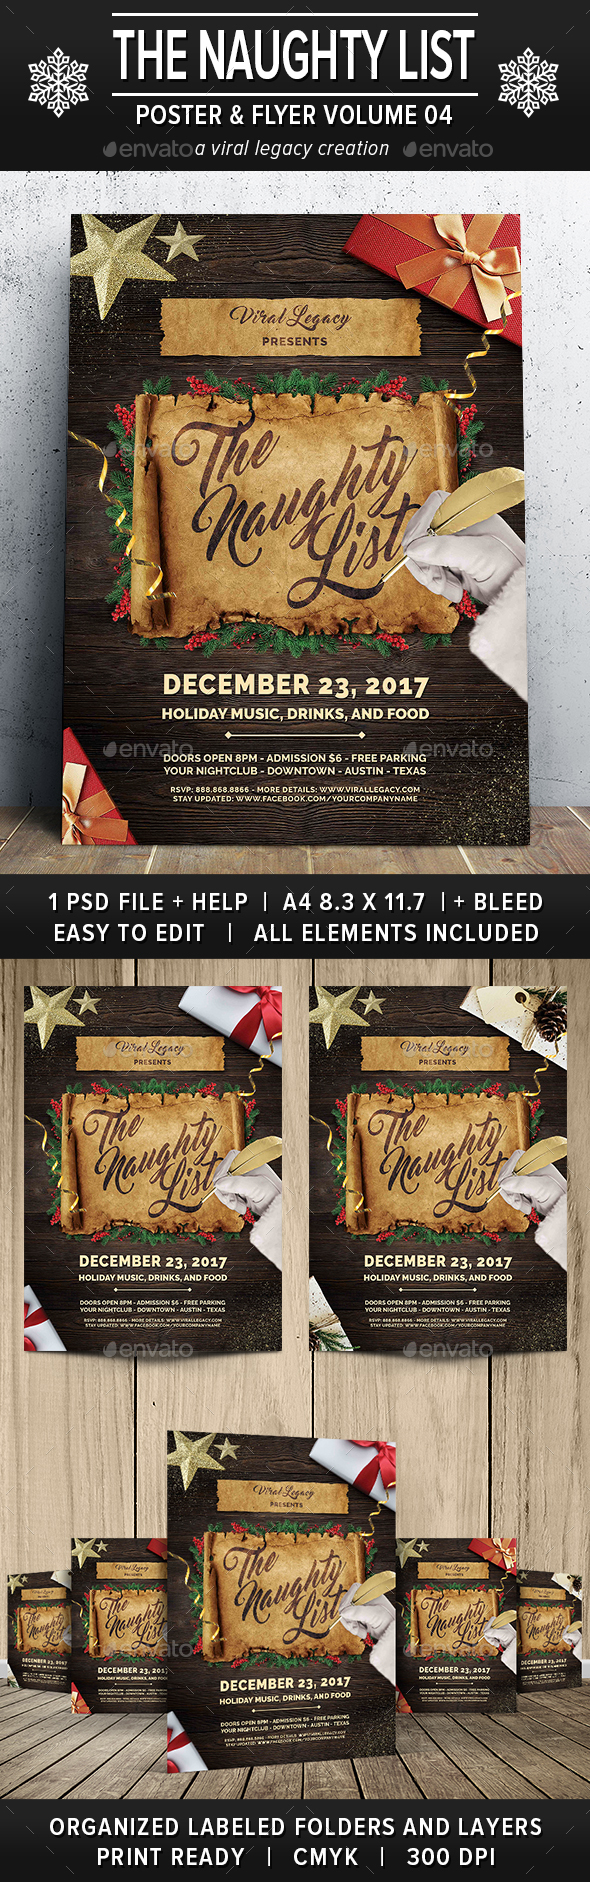 The Naughty List Poster / Flyer V04 - Flyers Print Templates